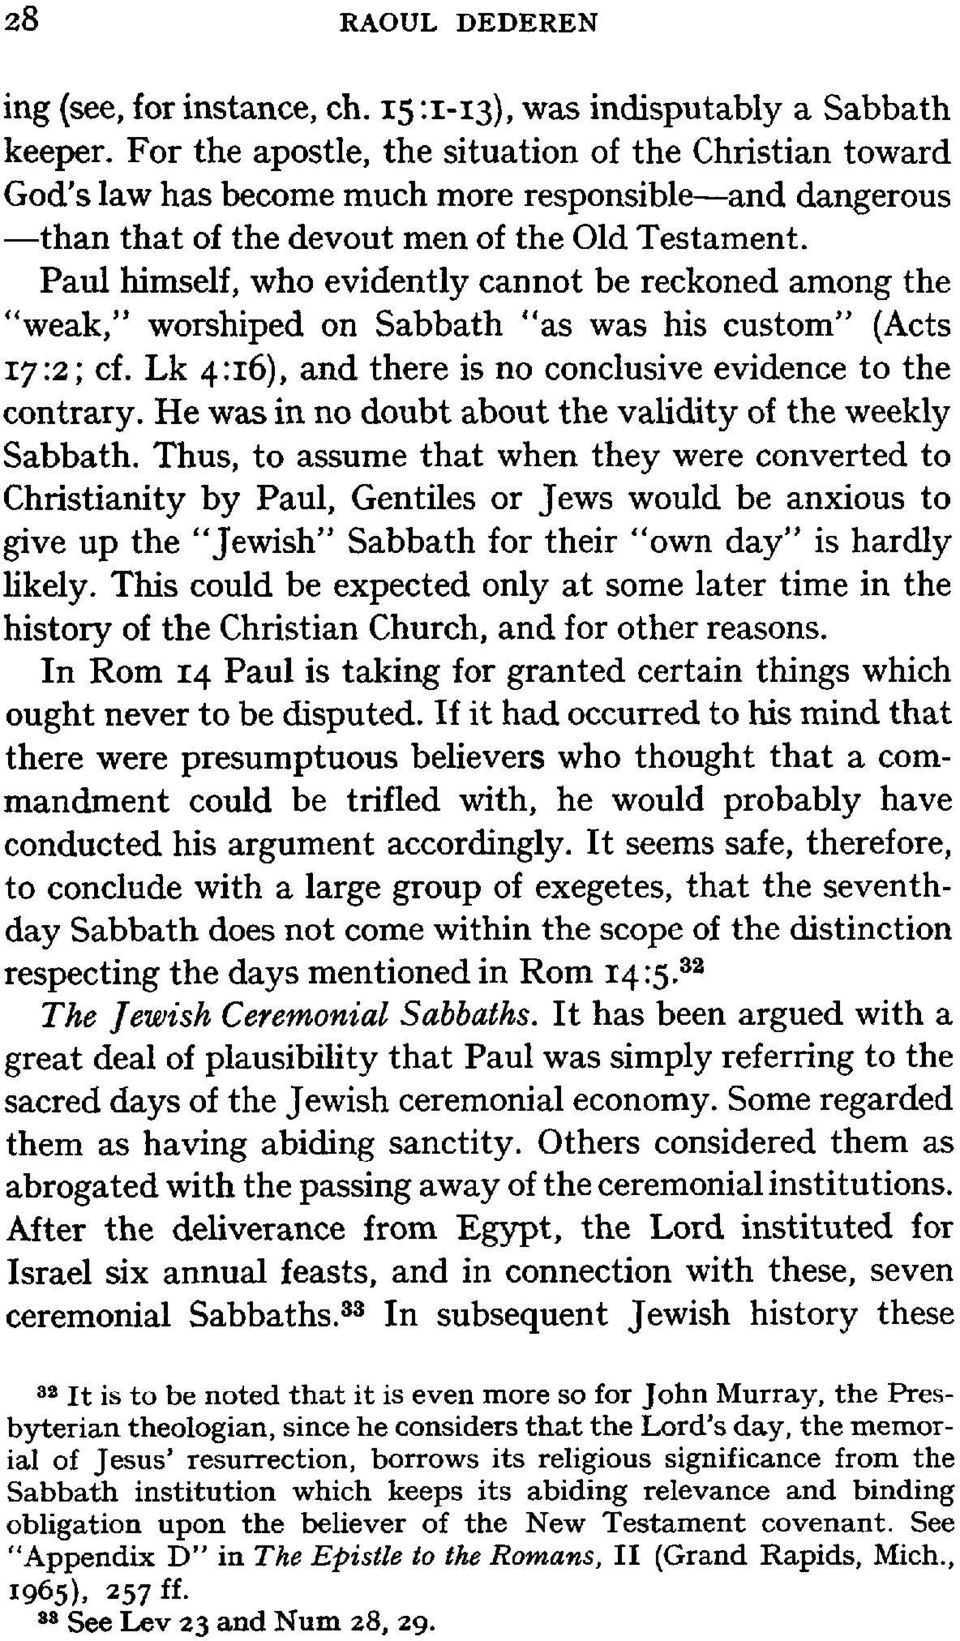 "Paul himself, who evidently cannot be reckoned among the ""weak,"" worshiped on Sabbath ""as was his custom"" (Acts 172; cf. Lk 4:16), and there is no conclusive evidence to the contrary."